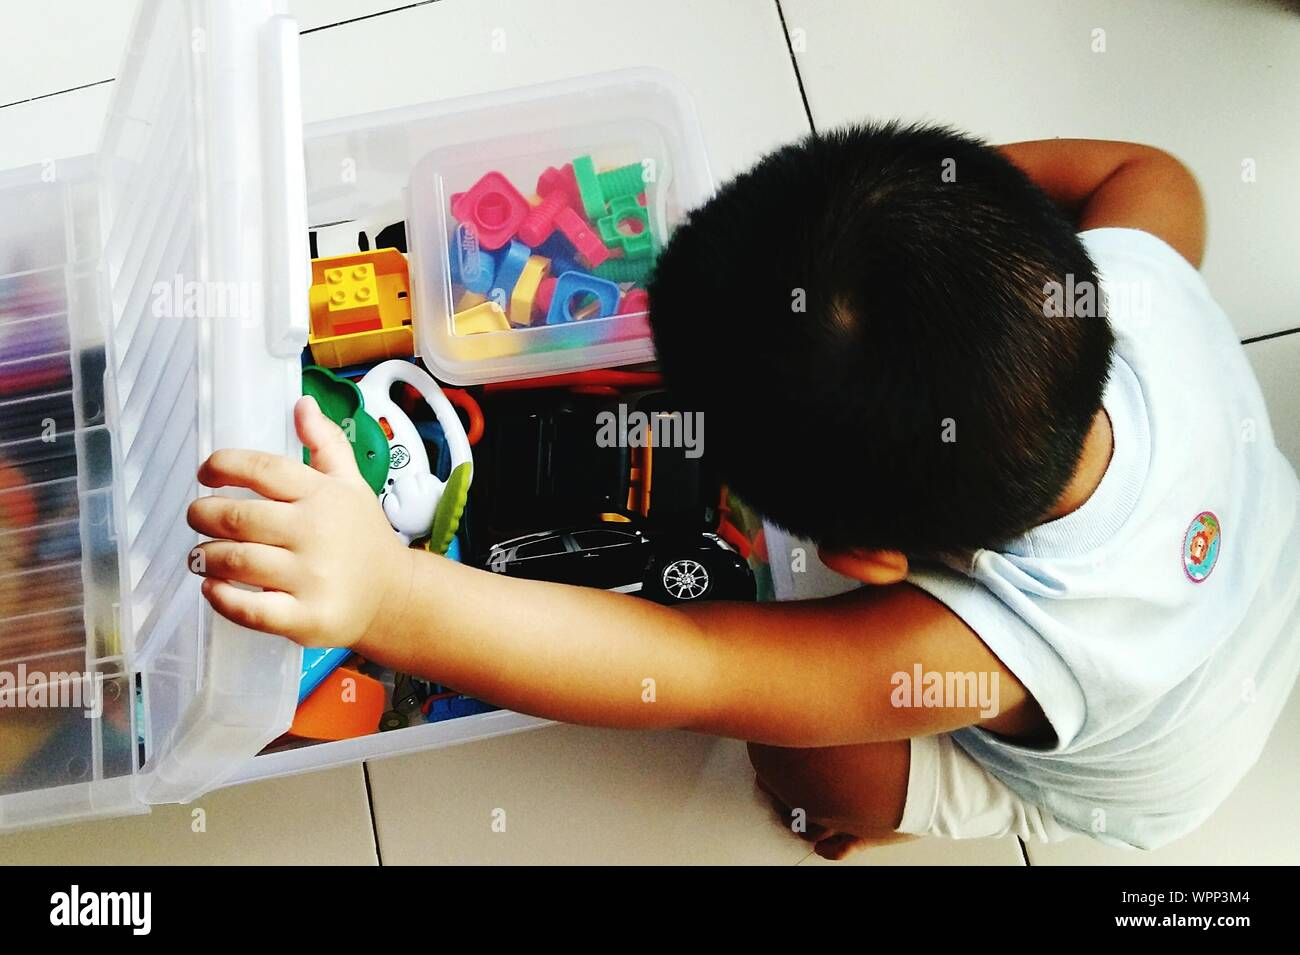 High Angle View Of Boy With Toys - Stock Photo